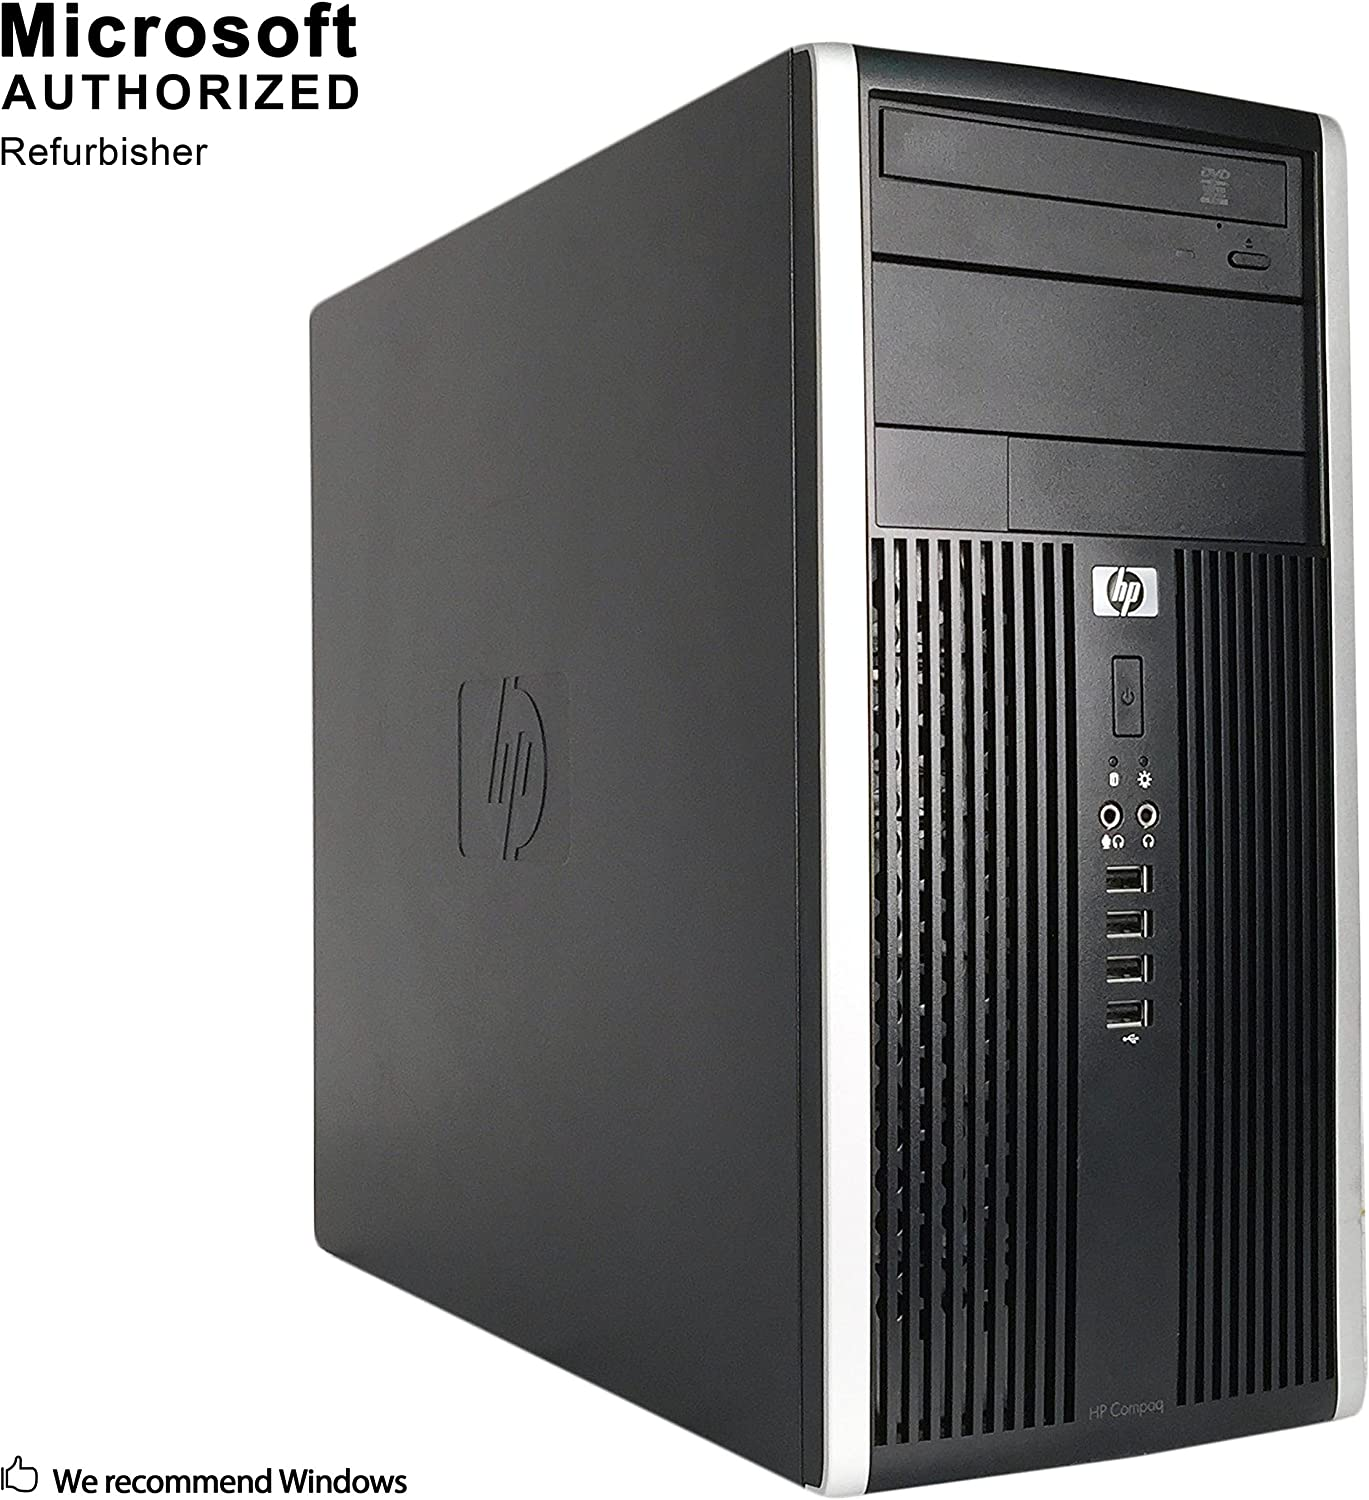 HP Compaq Pro 6300 Tower Desktop PC, Intel Quad Core i7-3770 up to 3.9GHz, 8G DDR3, 128G SSD + 1T HDD, WiFi, Bluetooth 4.0, DVD, Windows 10 64-Multi-Language Support English/Spanish/French (Renewed)